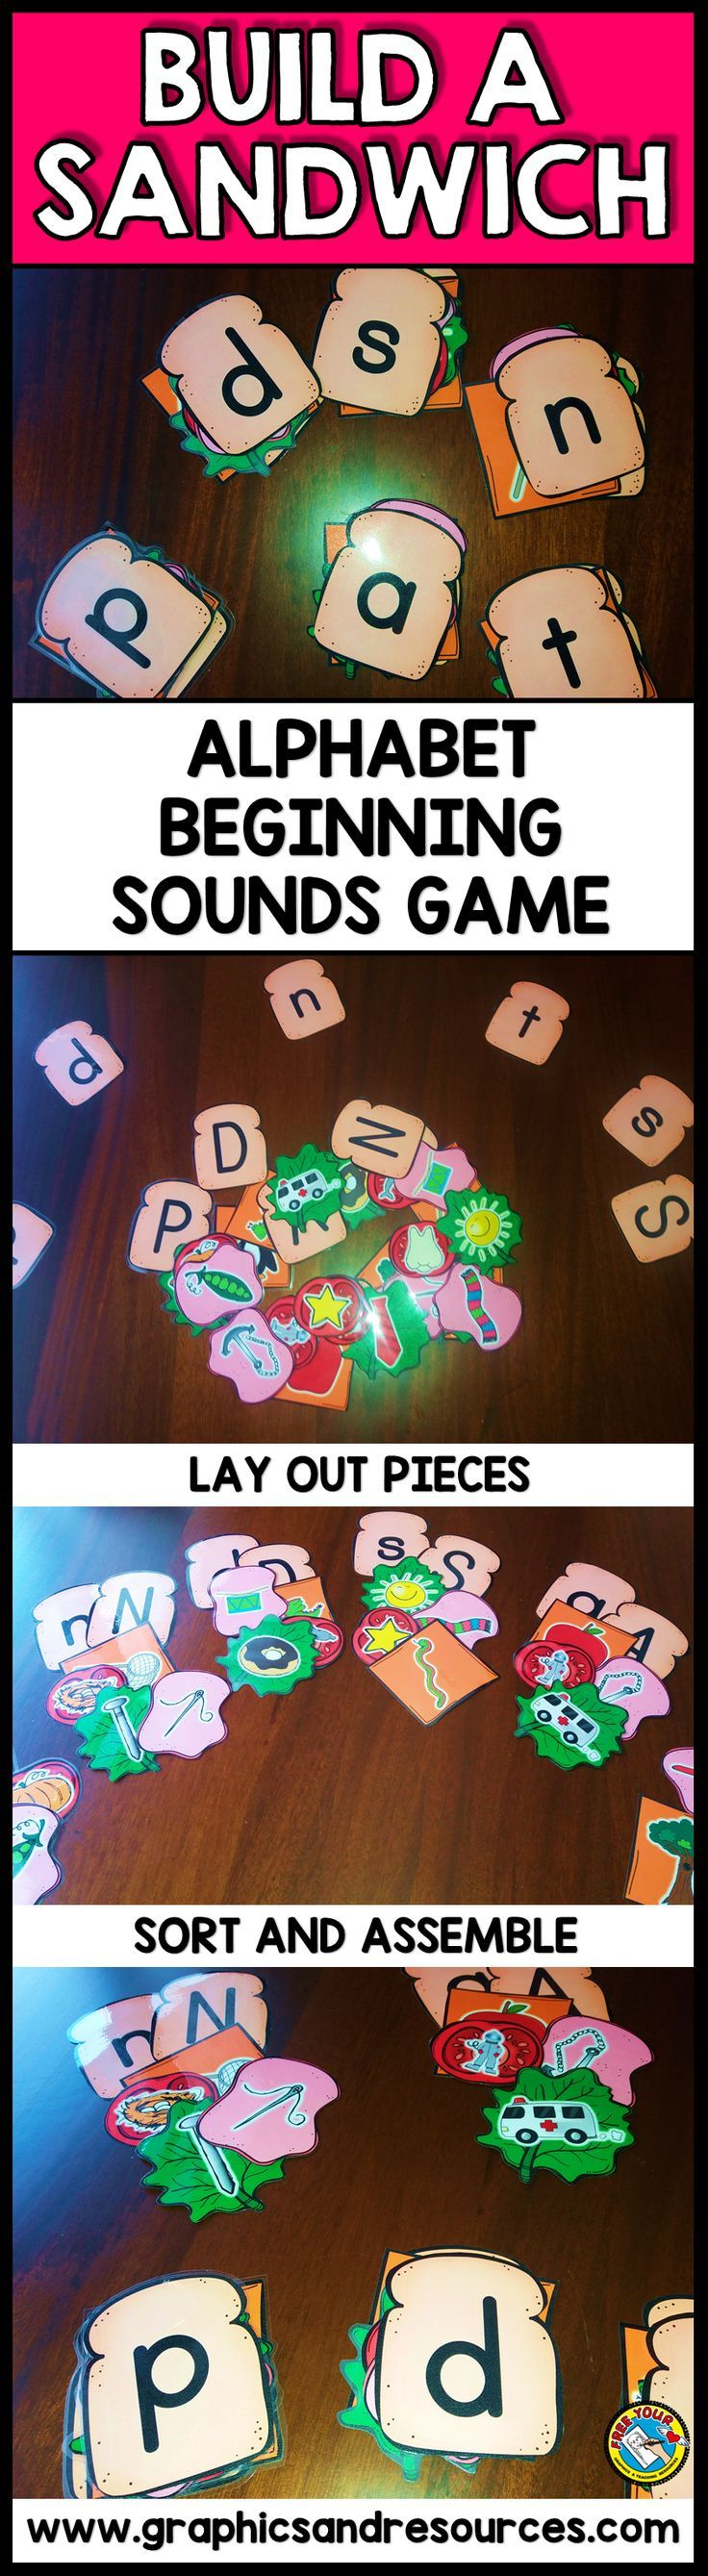 BUILD A SANDWICH BEGINNING SOUNDS GAME FOR KINDERGARTEN This fun original game will surely engage all students and can be played individually or in small groups. Students assemble sandwiches by matching each lowercase letter with the pictures that start* with that letter and also with the uppercase letter. They will surely have a blast!